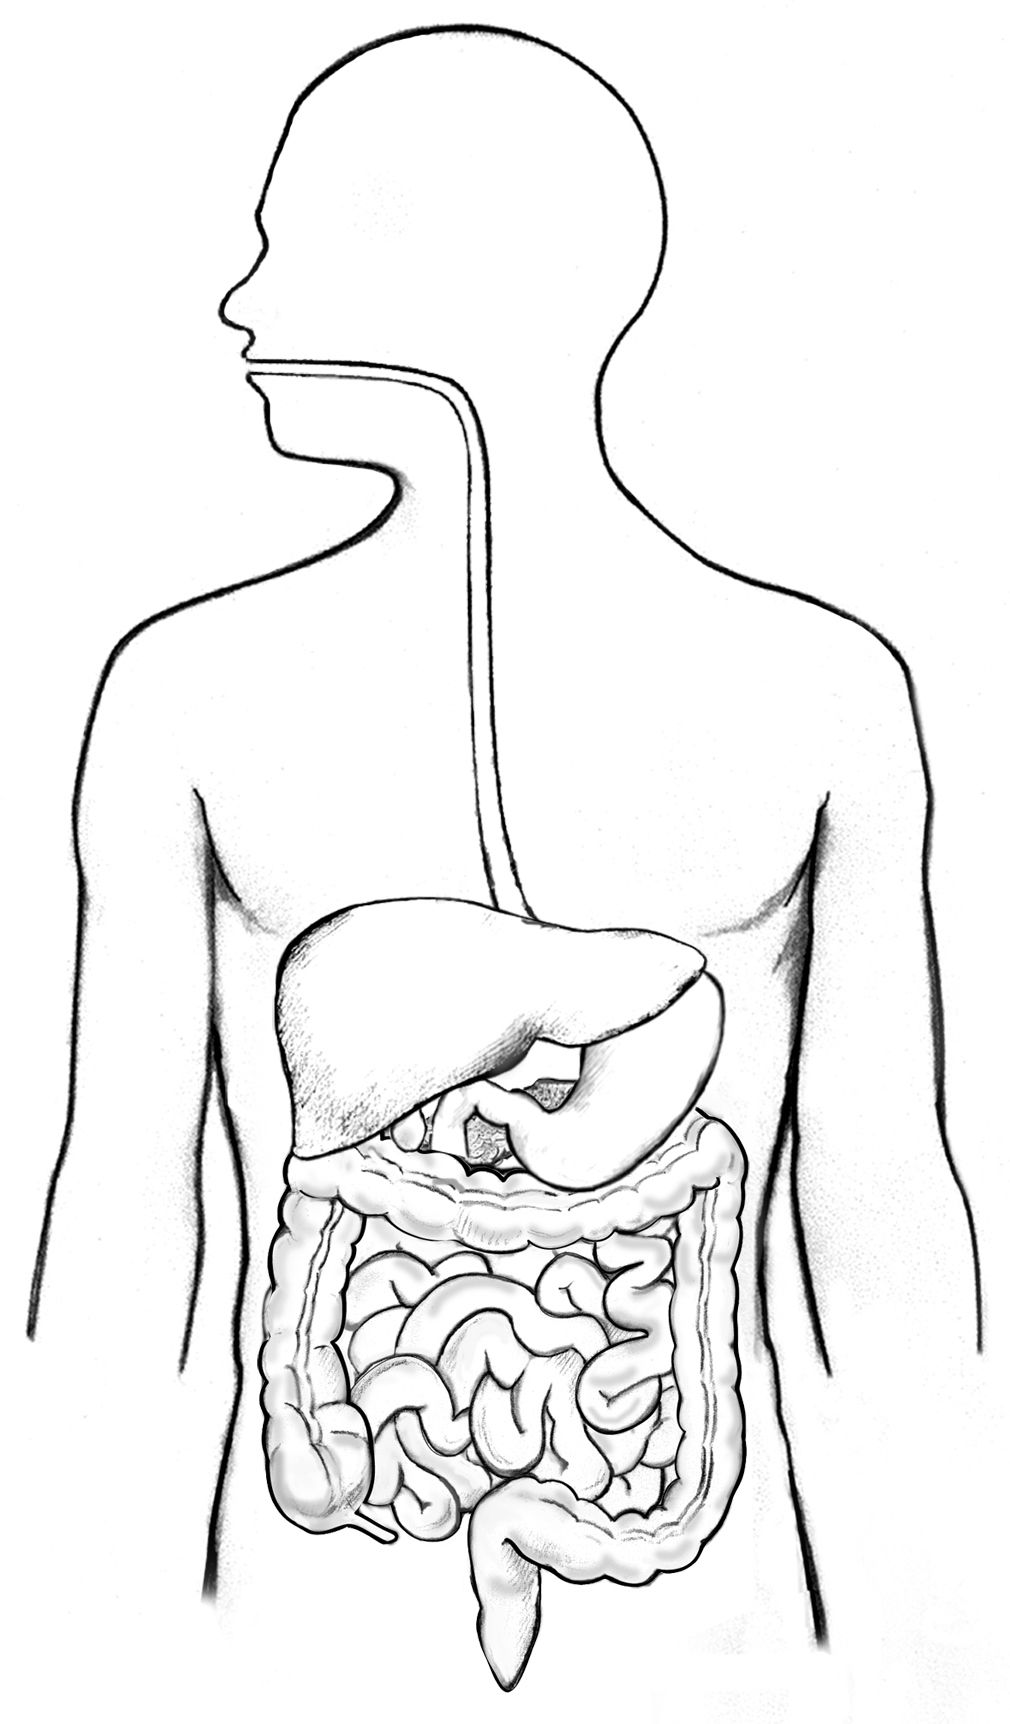 Image result for human digestive system unlabelled diagram